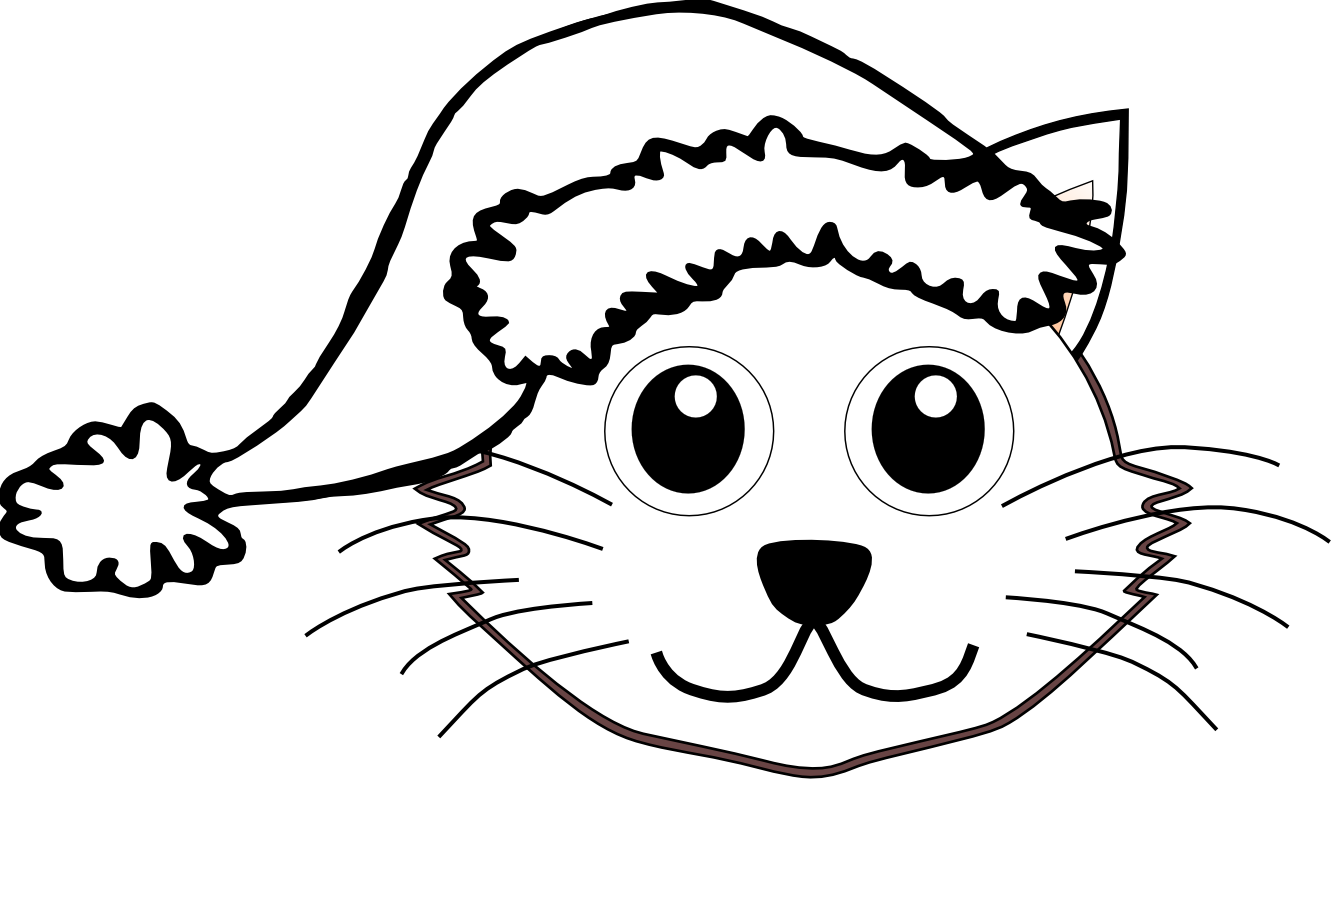 Cat in the hat outline clipart clipart transparent Cat In The Hat Drawing at GetDrawings.com | Free for personal use ... clipart transparent